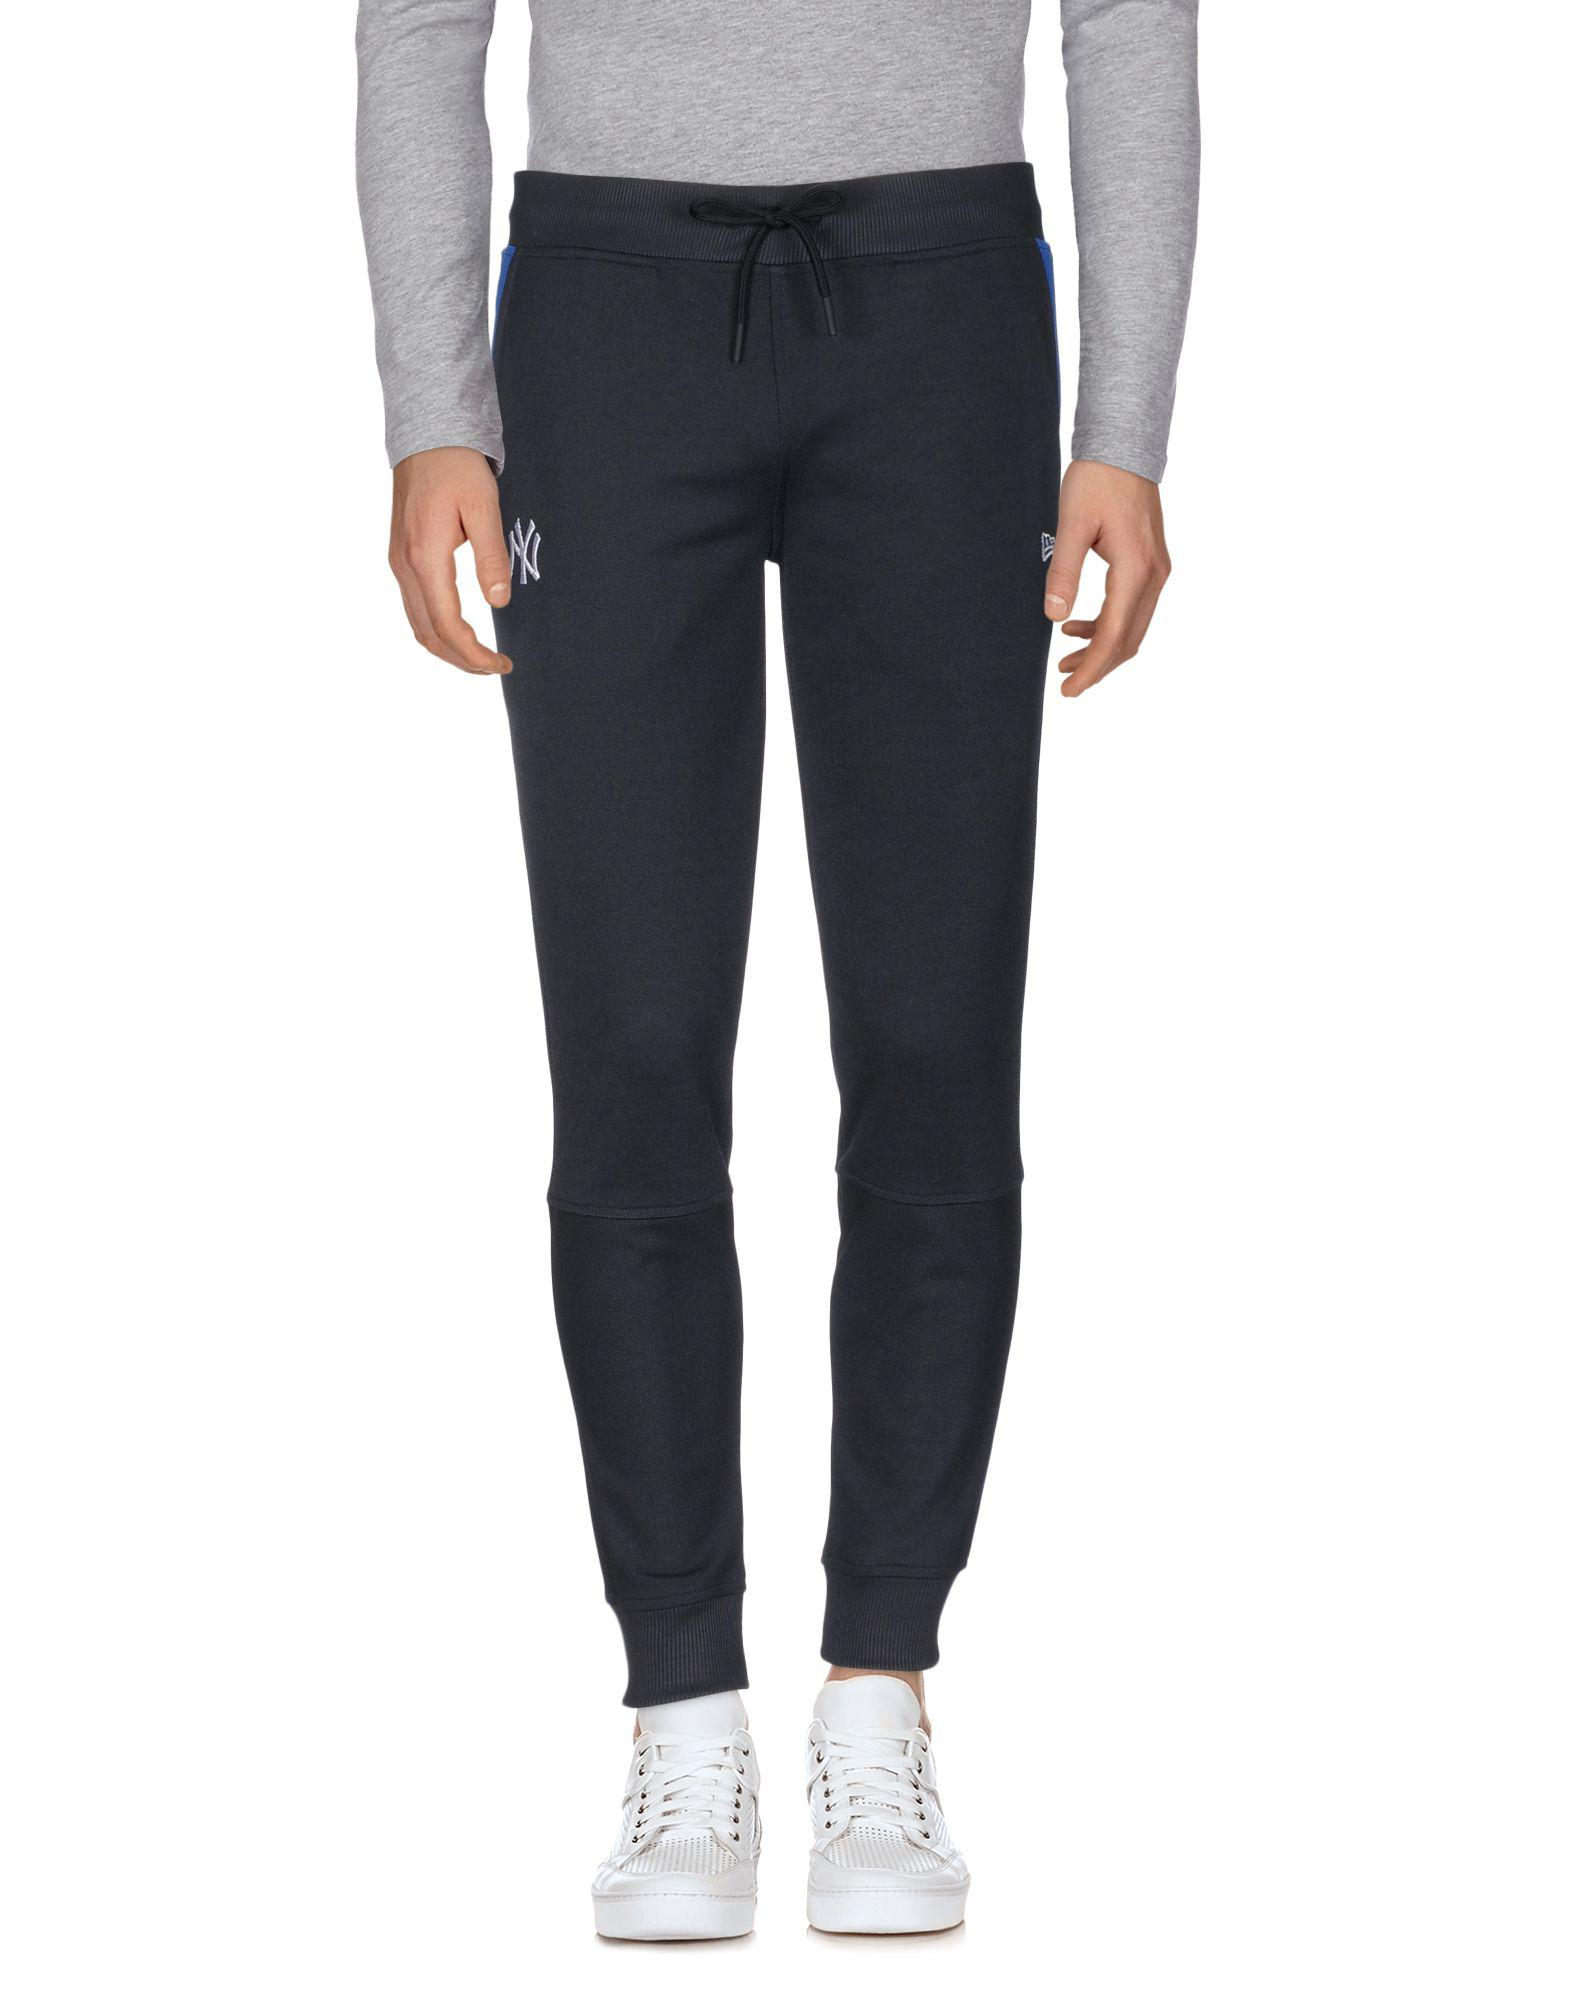 TROUSERS - Casual trousers KTZ 2018 Newest Sale Online Good Service Free Shipping Good Selling NgCFg4h